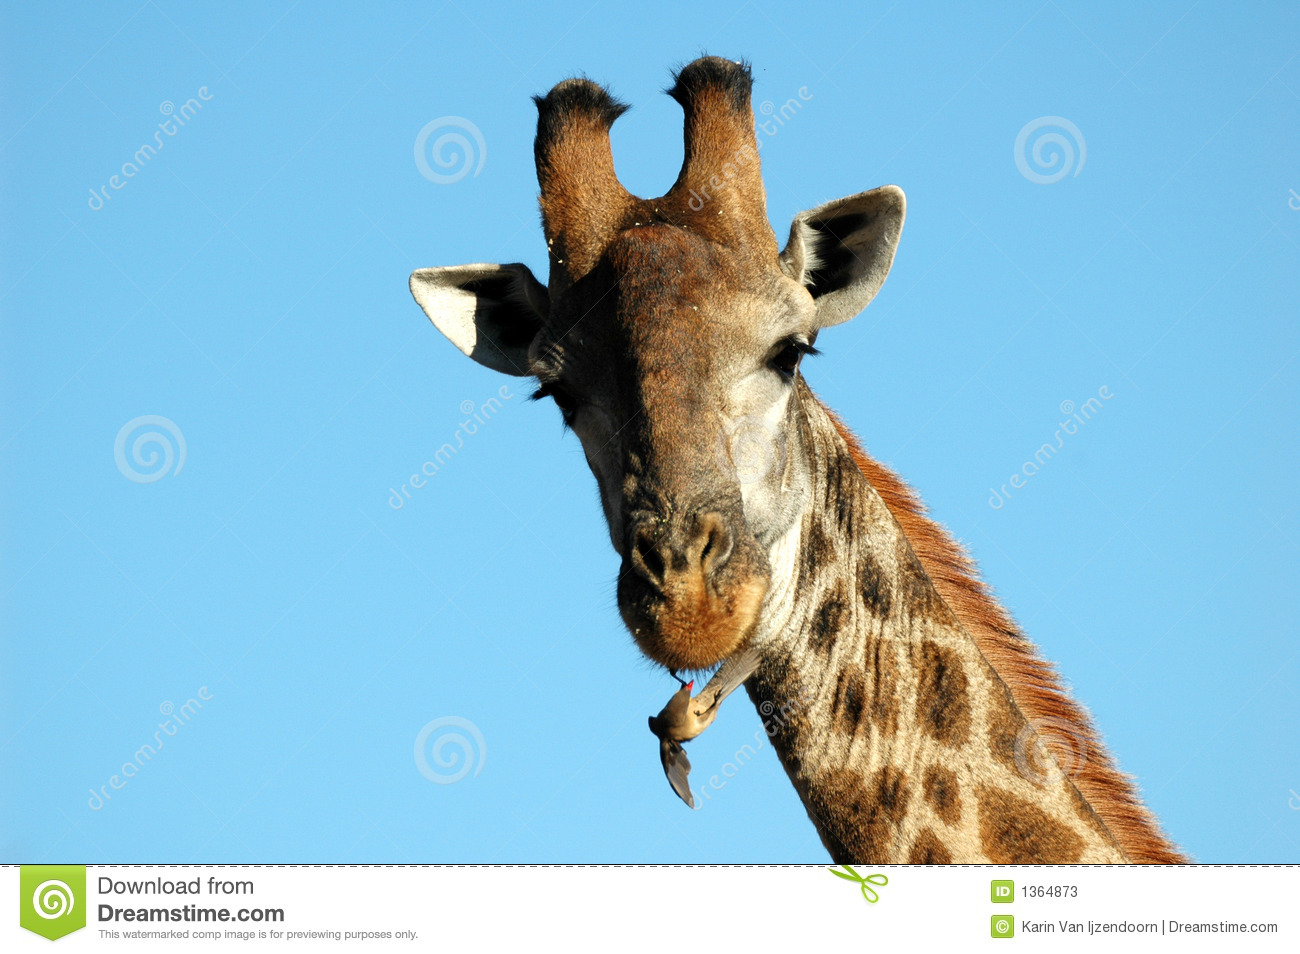 red billed oxpecker and giraffe relationship